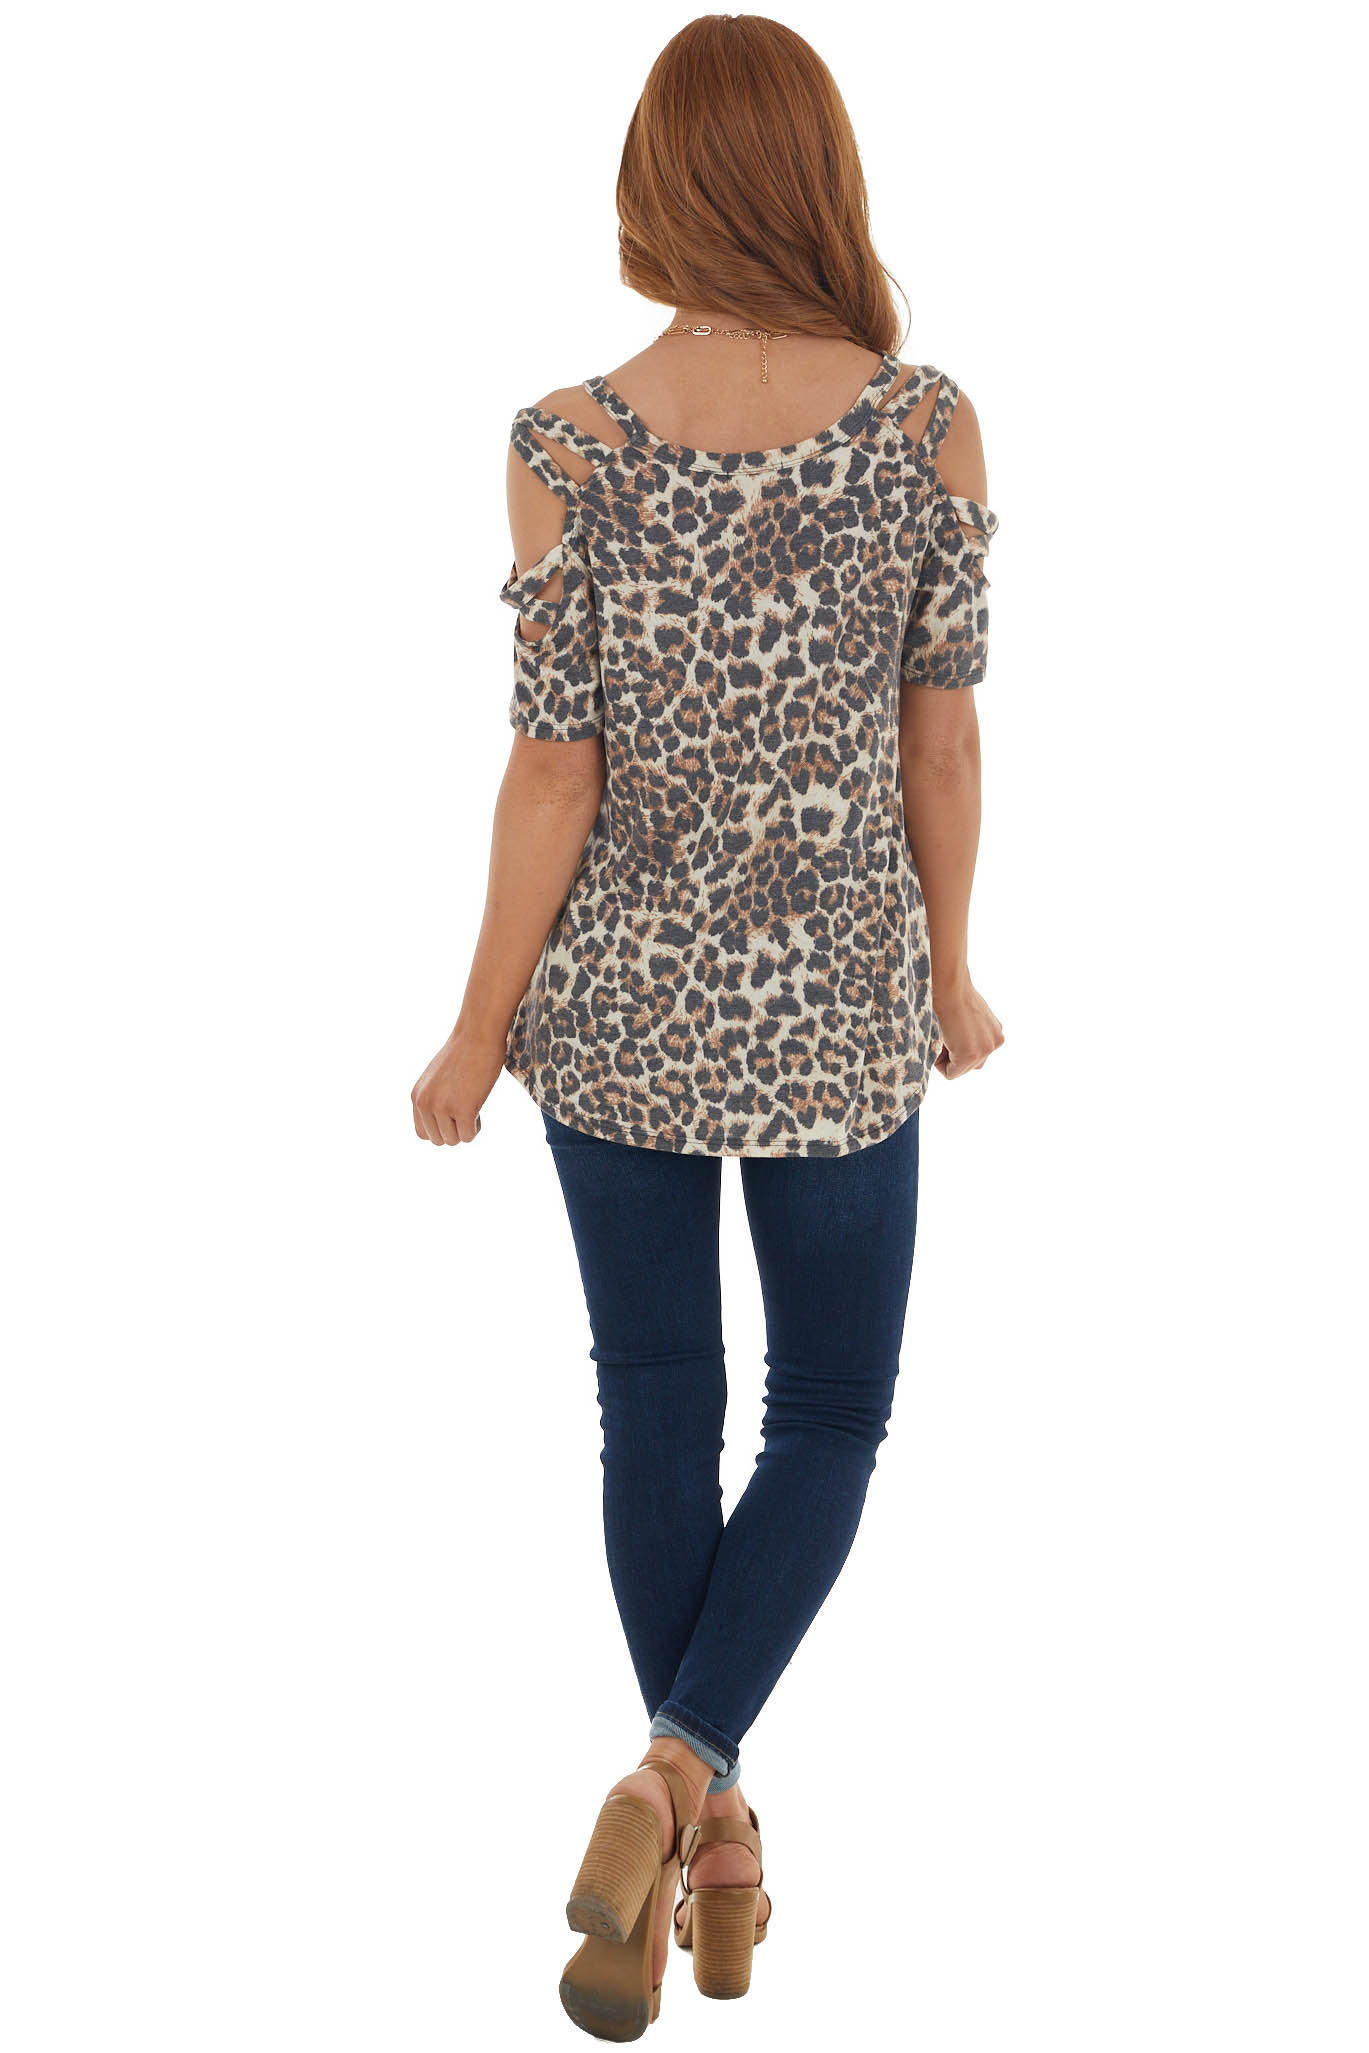 Beige Leopard Print Top with Cut Out Sleeves